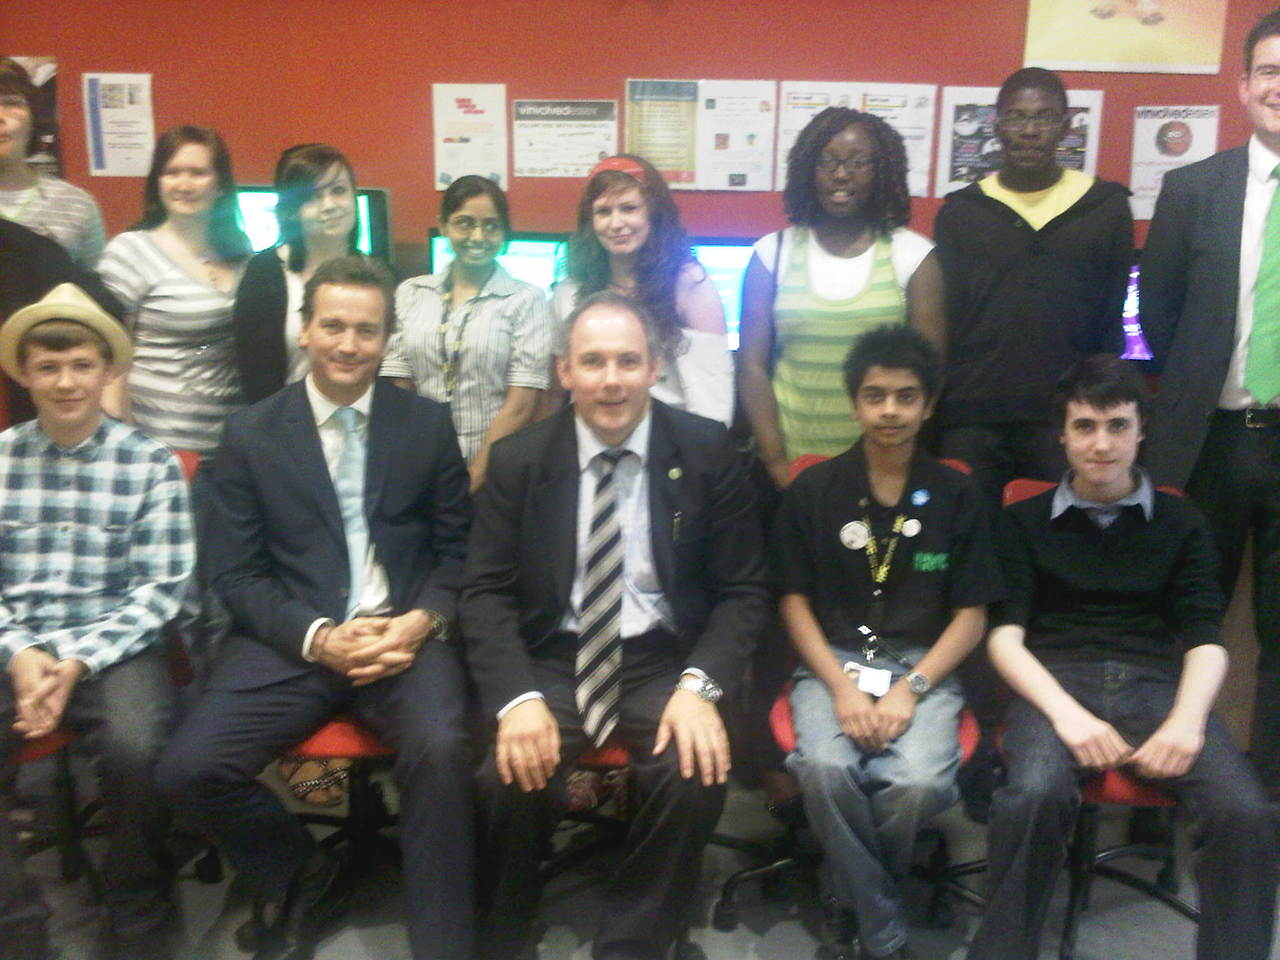 me+with+robert+halforn+mp+and+nick+hurd+mp+in+cafe+youth+for+big+society+launch+